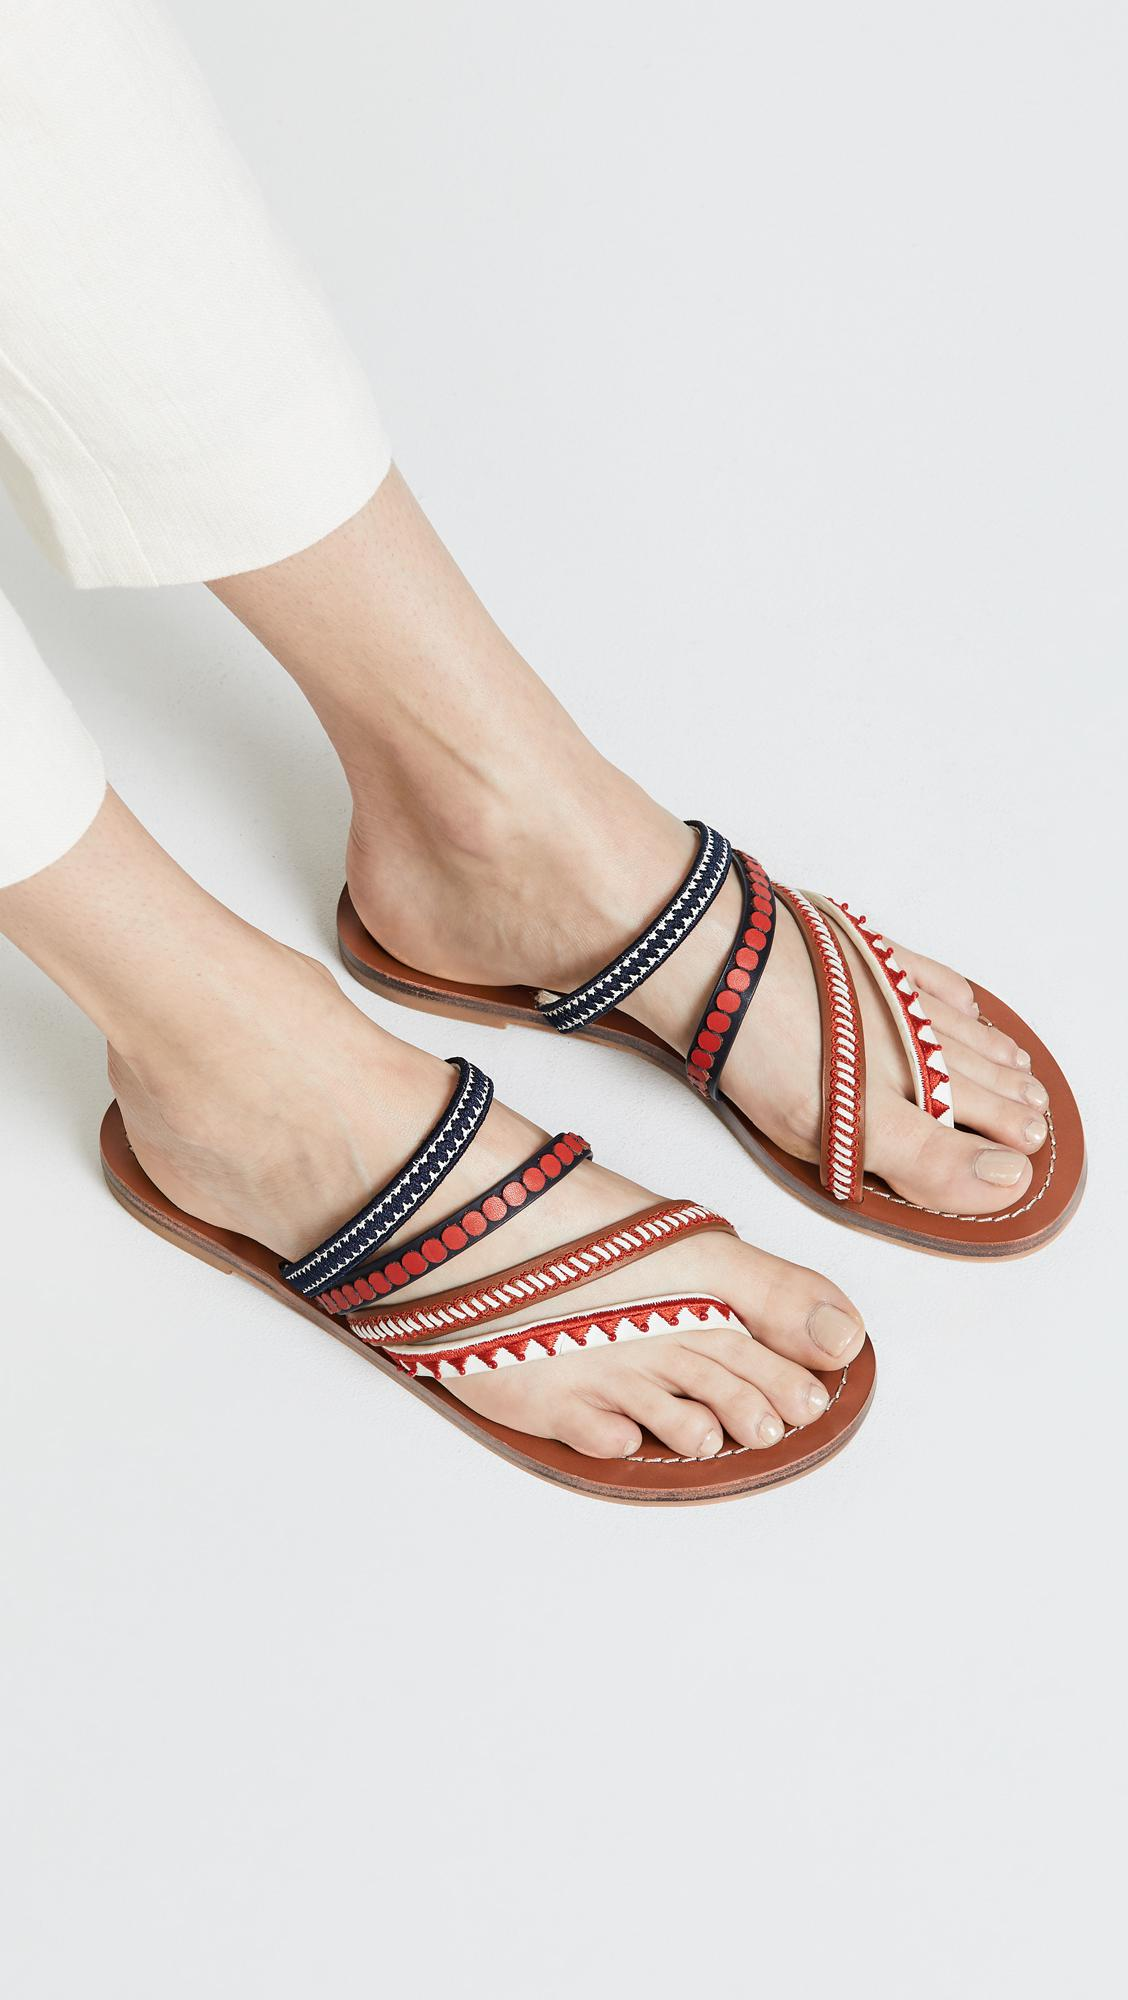 c171a787956 Lyst - Tory Burch Patos Embroidered Sandals